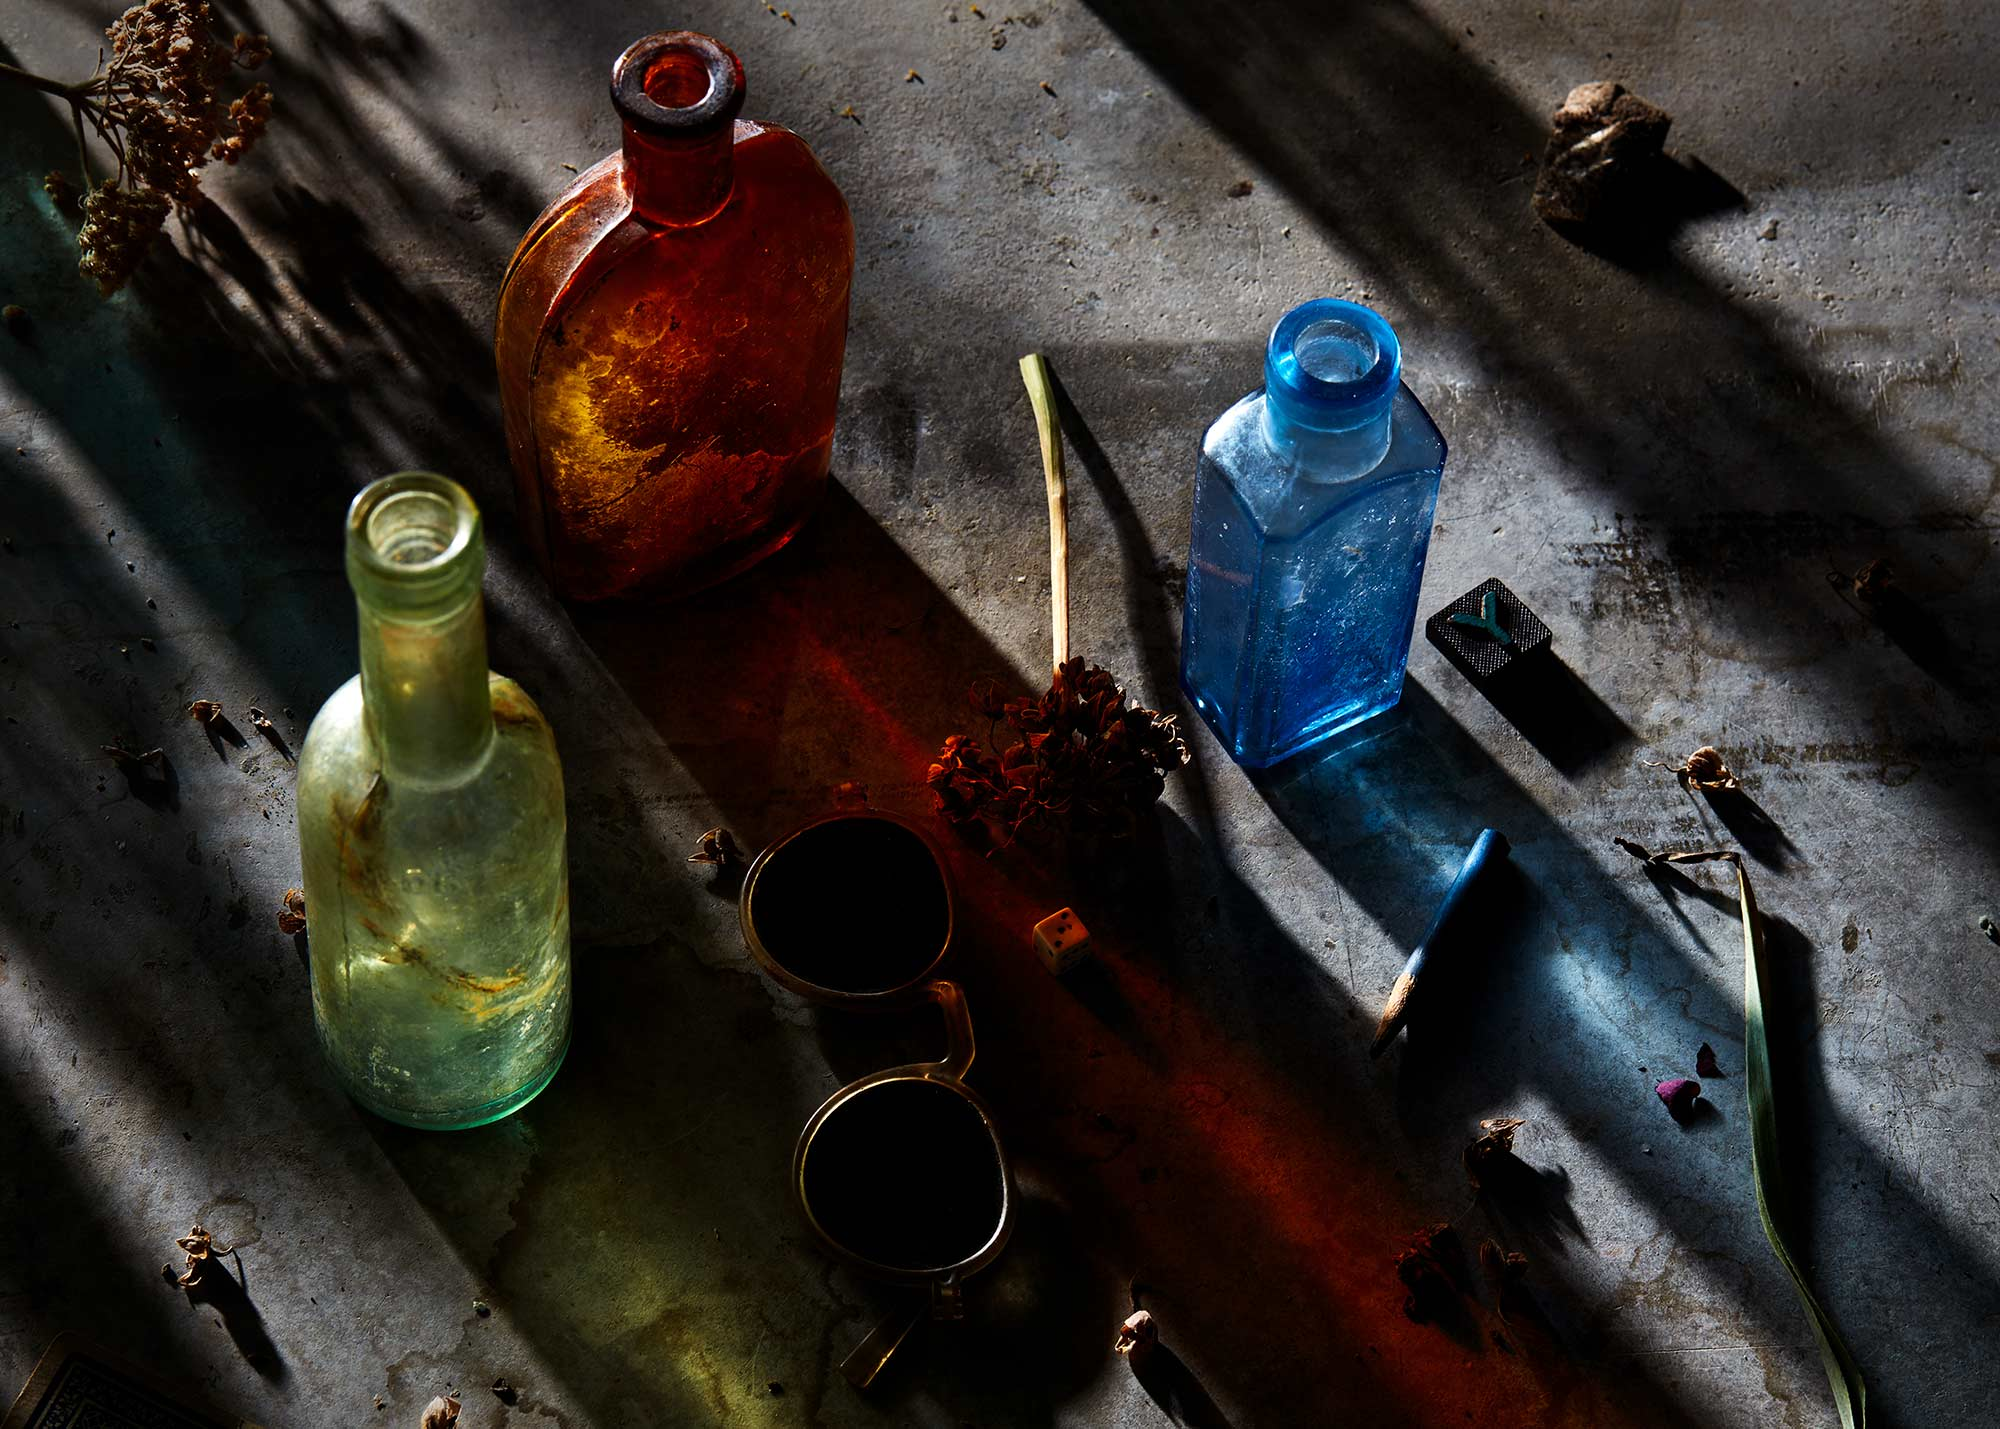 still life photograph of colorful bottles and shadows